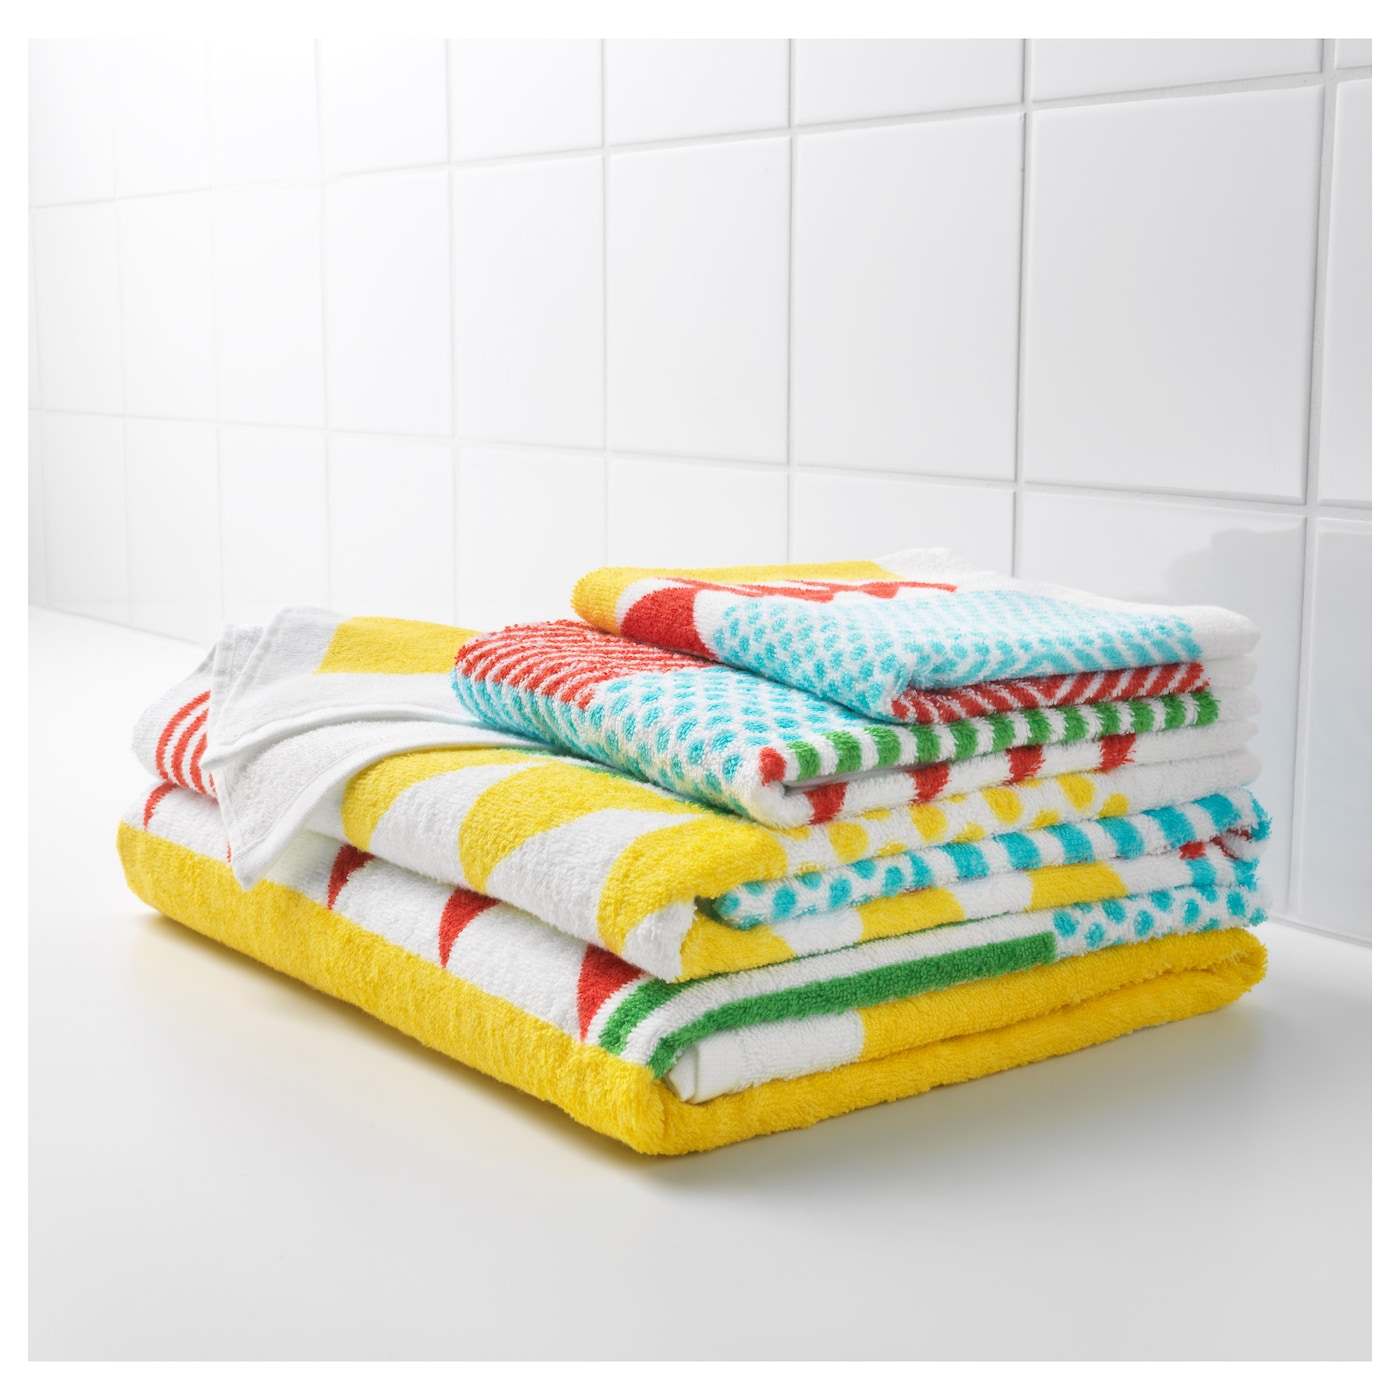 IKEA NIMMERN bath towel A terry towel that is soft and absorbent (weight 380 g/m²).